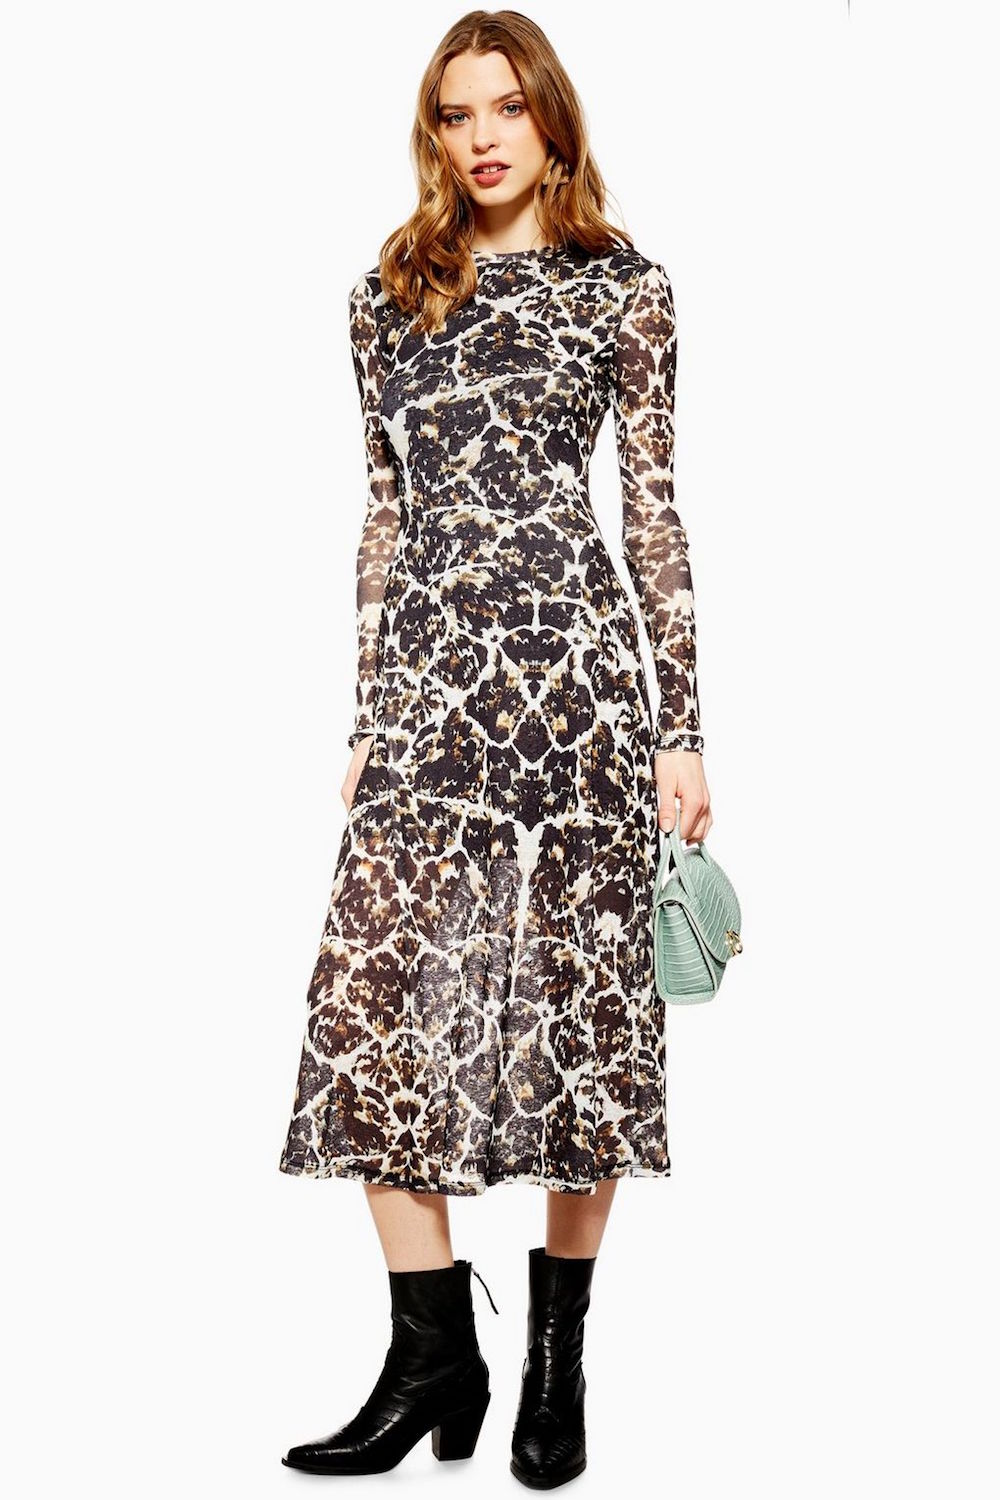 Topshop  10 Versatile Dresses That Will Take You From Work to Play Topshop Tortoiseshell Mesh Dress